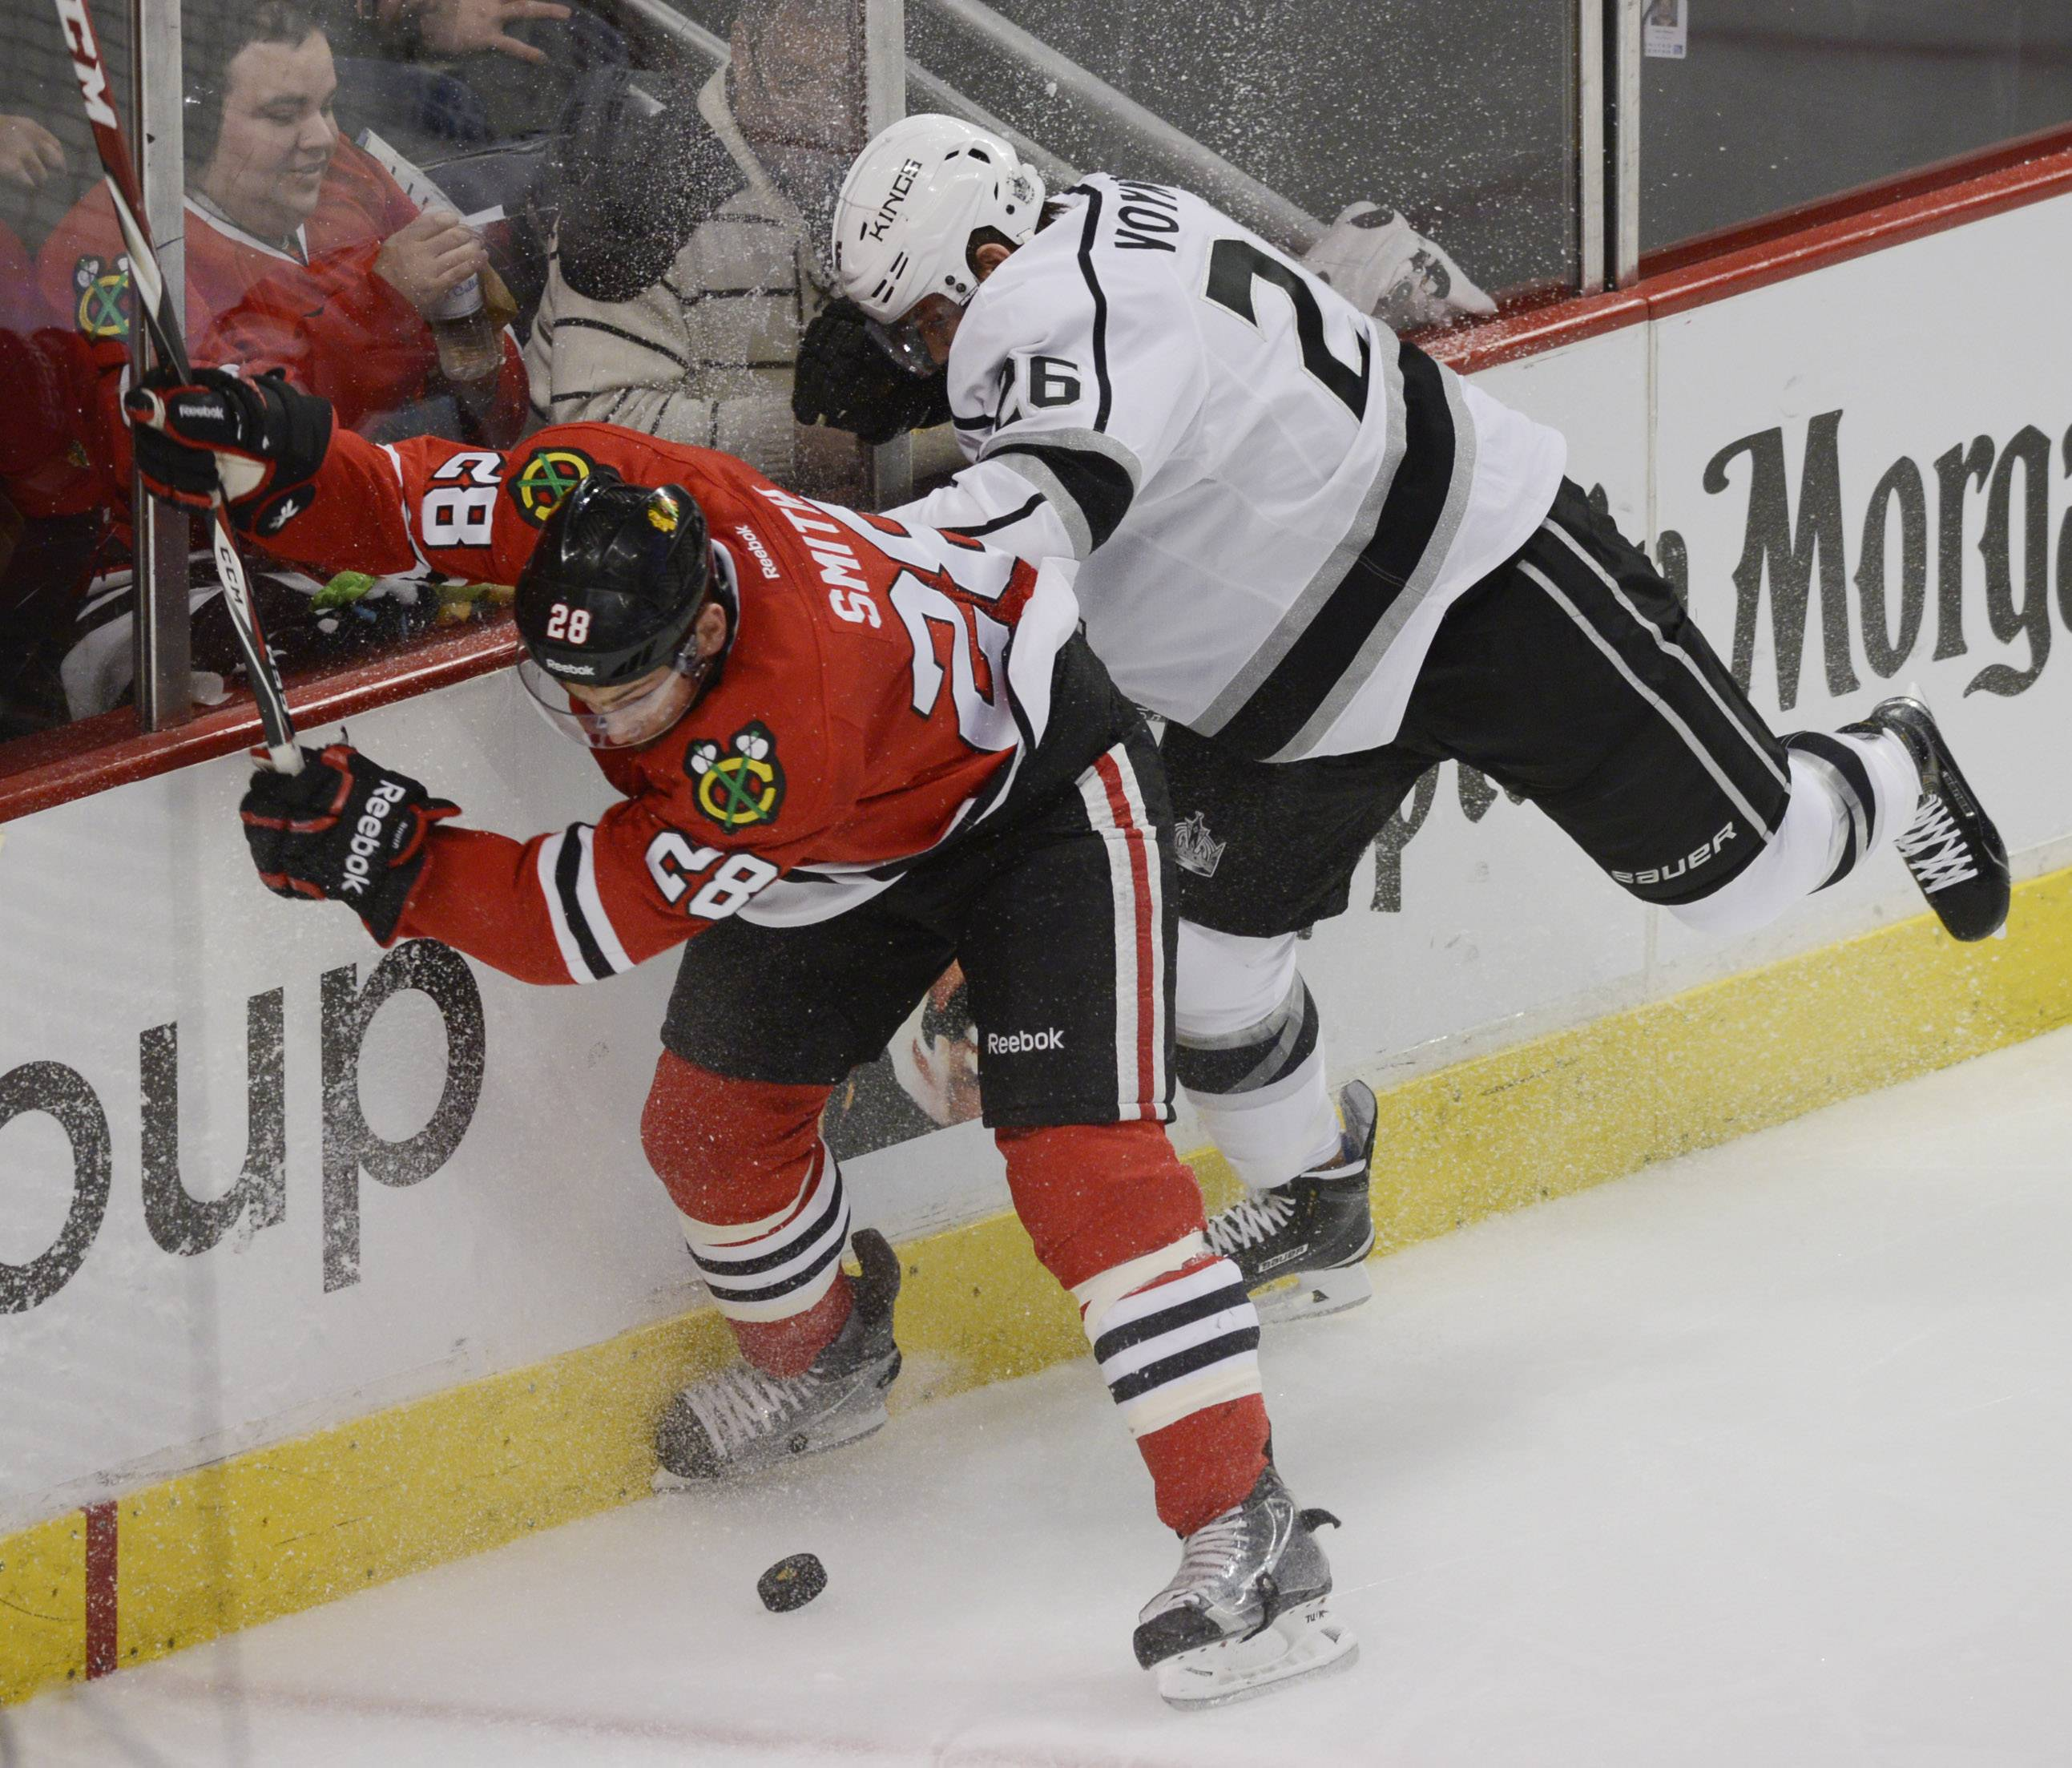 Chicago Blackhawks right wing Ben Smith, left, gets hit by Los Angeles Kings defenseman Slava Voynov the third period of Sunday's game at the United Center in Chicago.